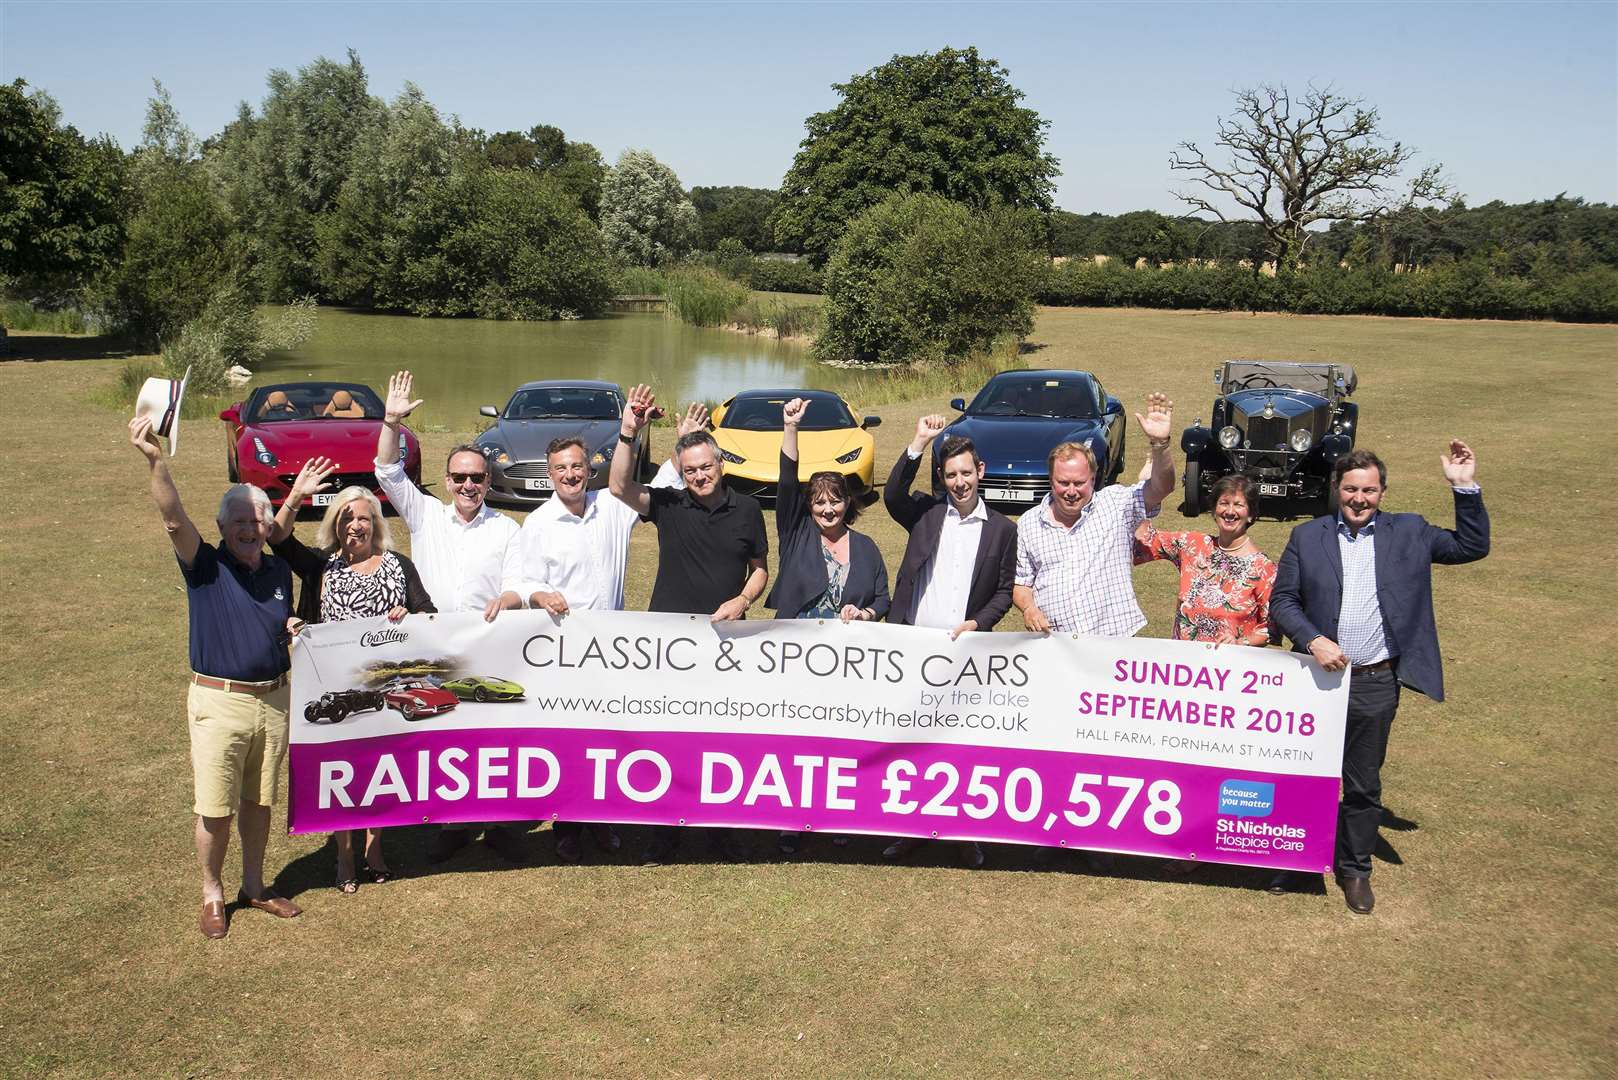 The Classic and Sports Cars by the Lake event, on Sunday, September 2, will have hundreds of vehicles on display all in aid of St Nicholas Hospice Care. Picture Mark Westley